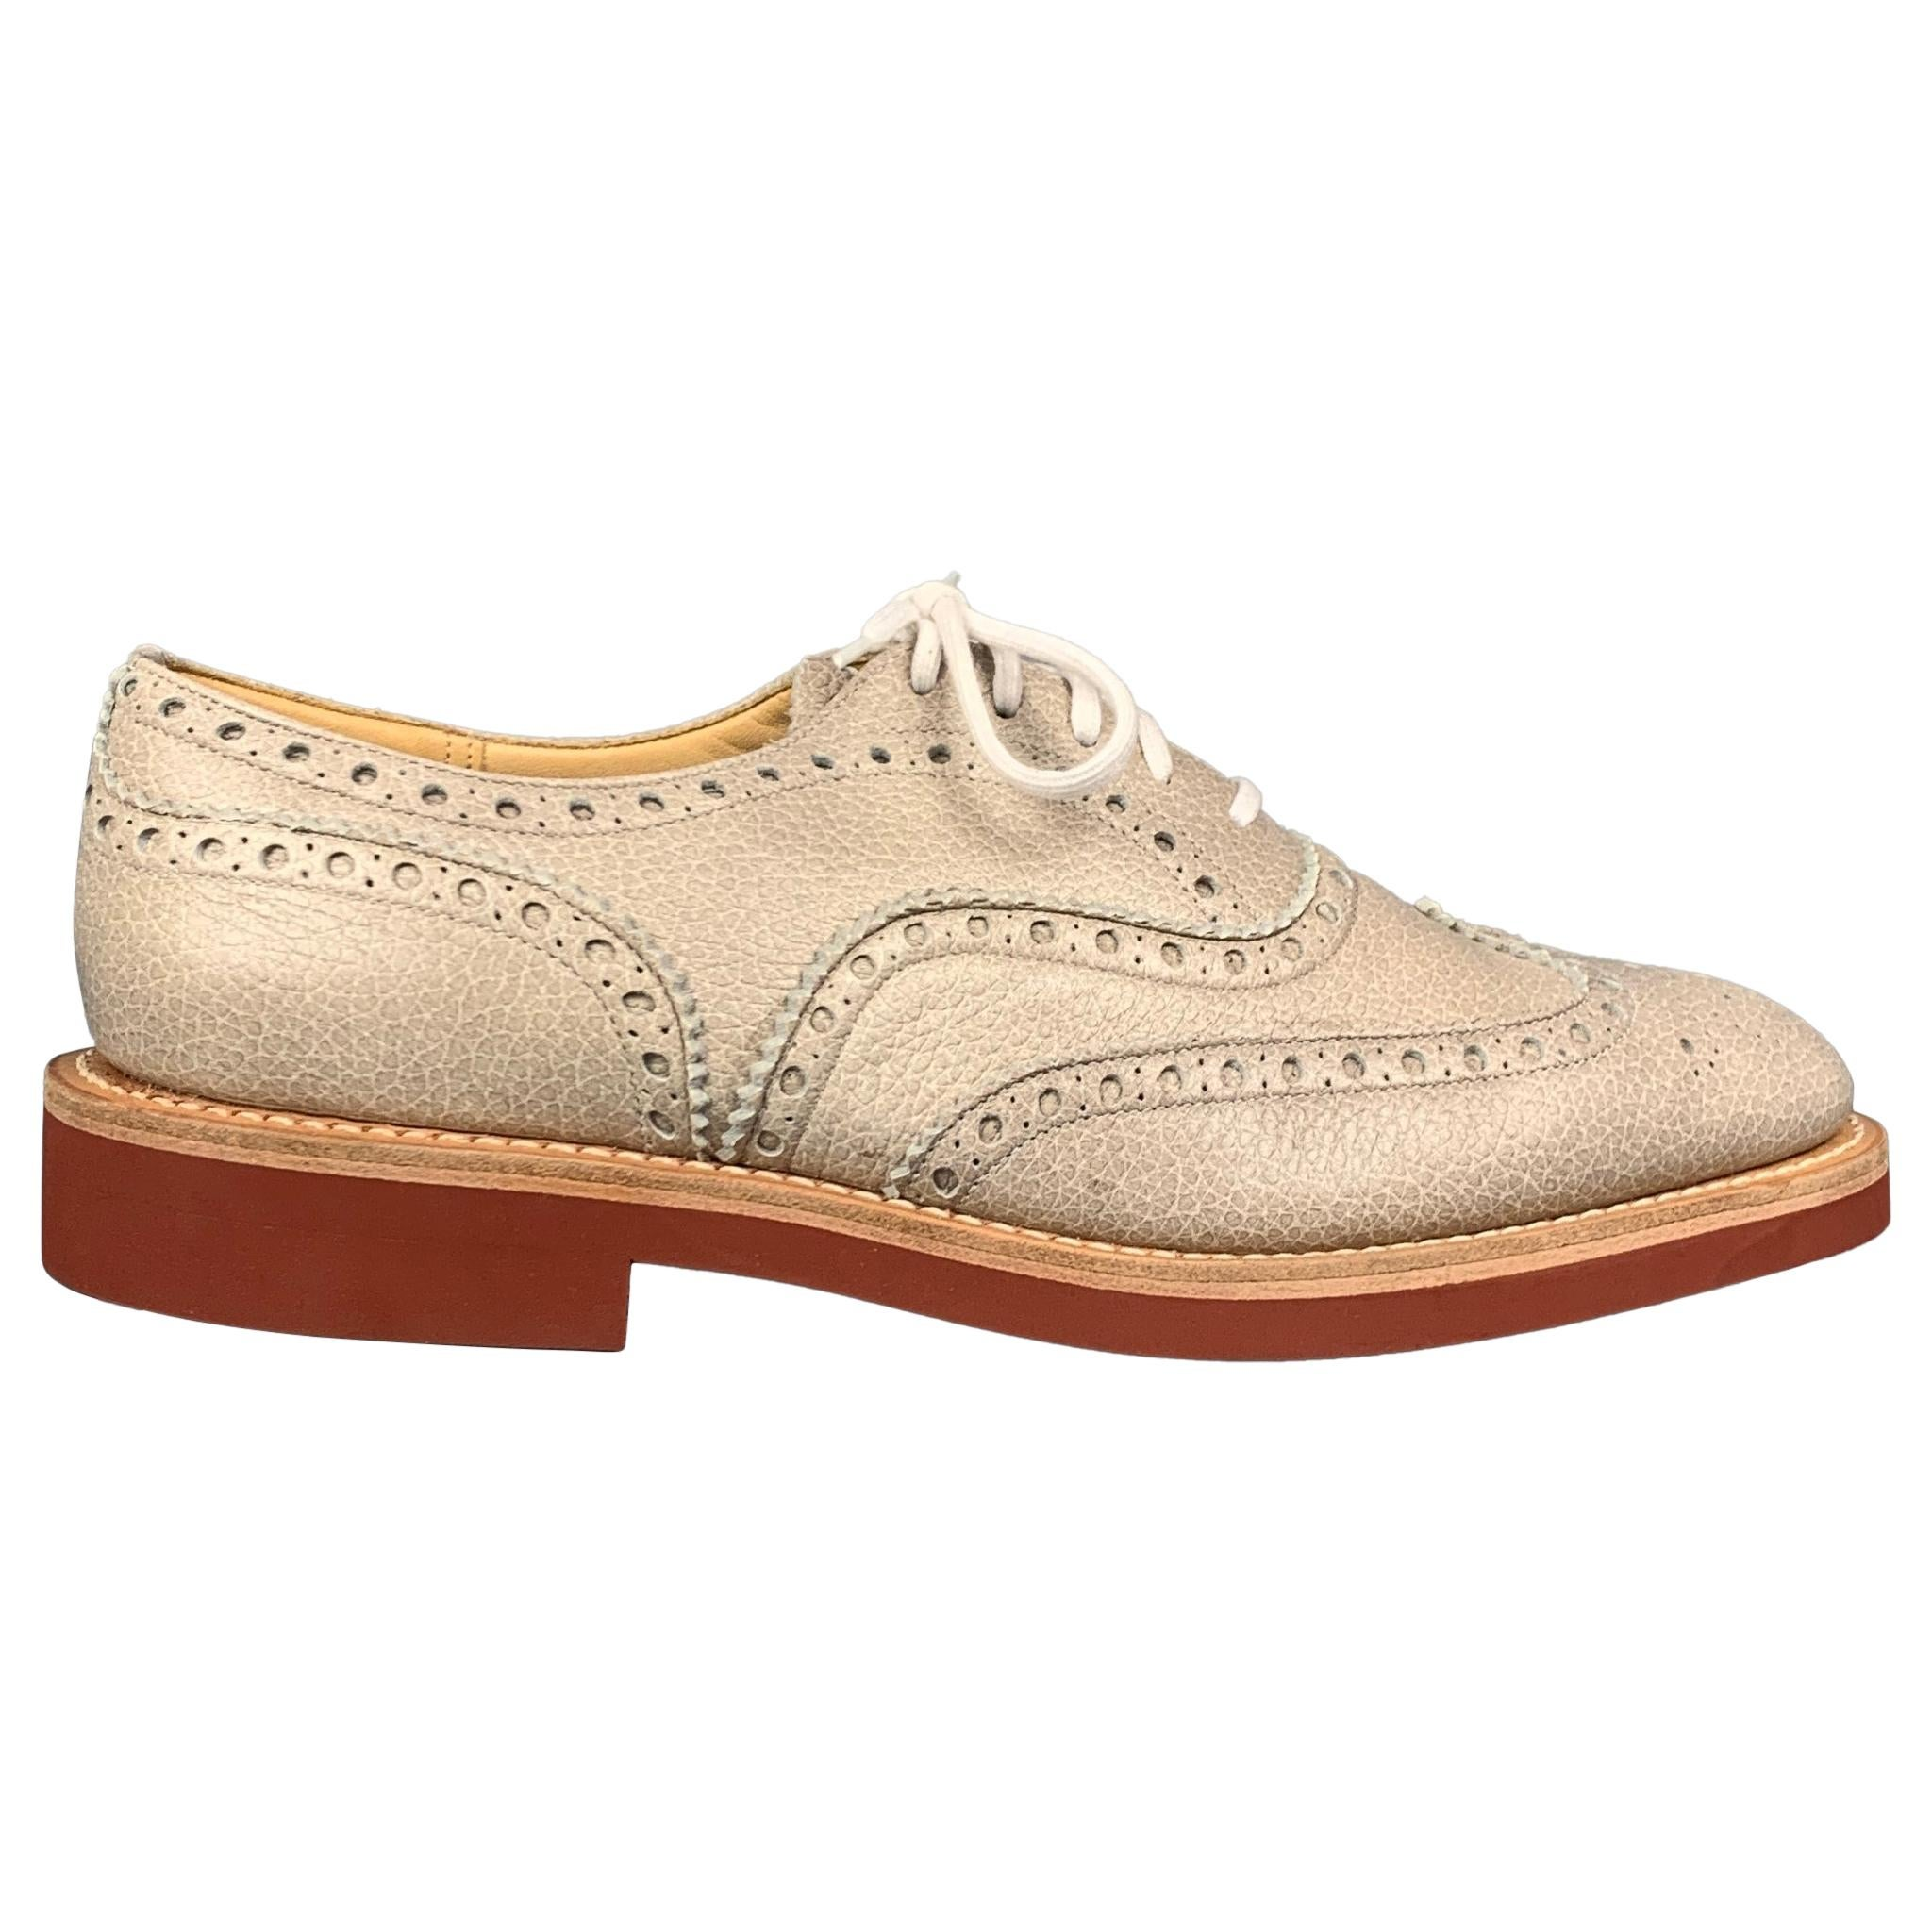 CHURCHILL Downton Size 7.5 Taupe Perforated Pebble Grain Leather Lace Up Shoes